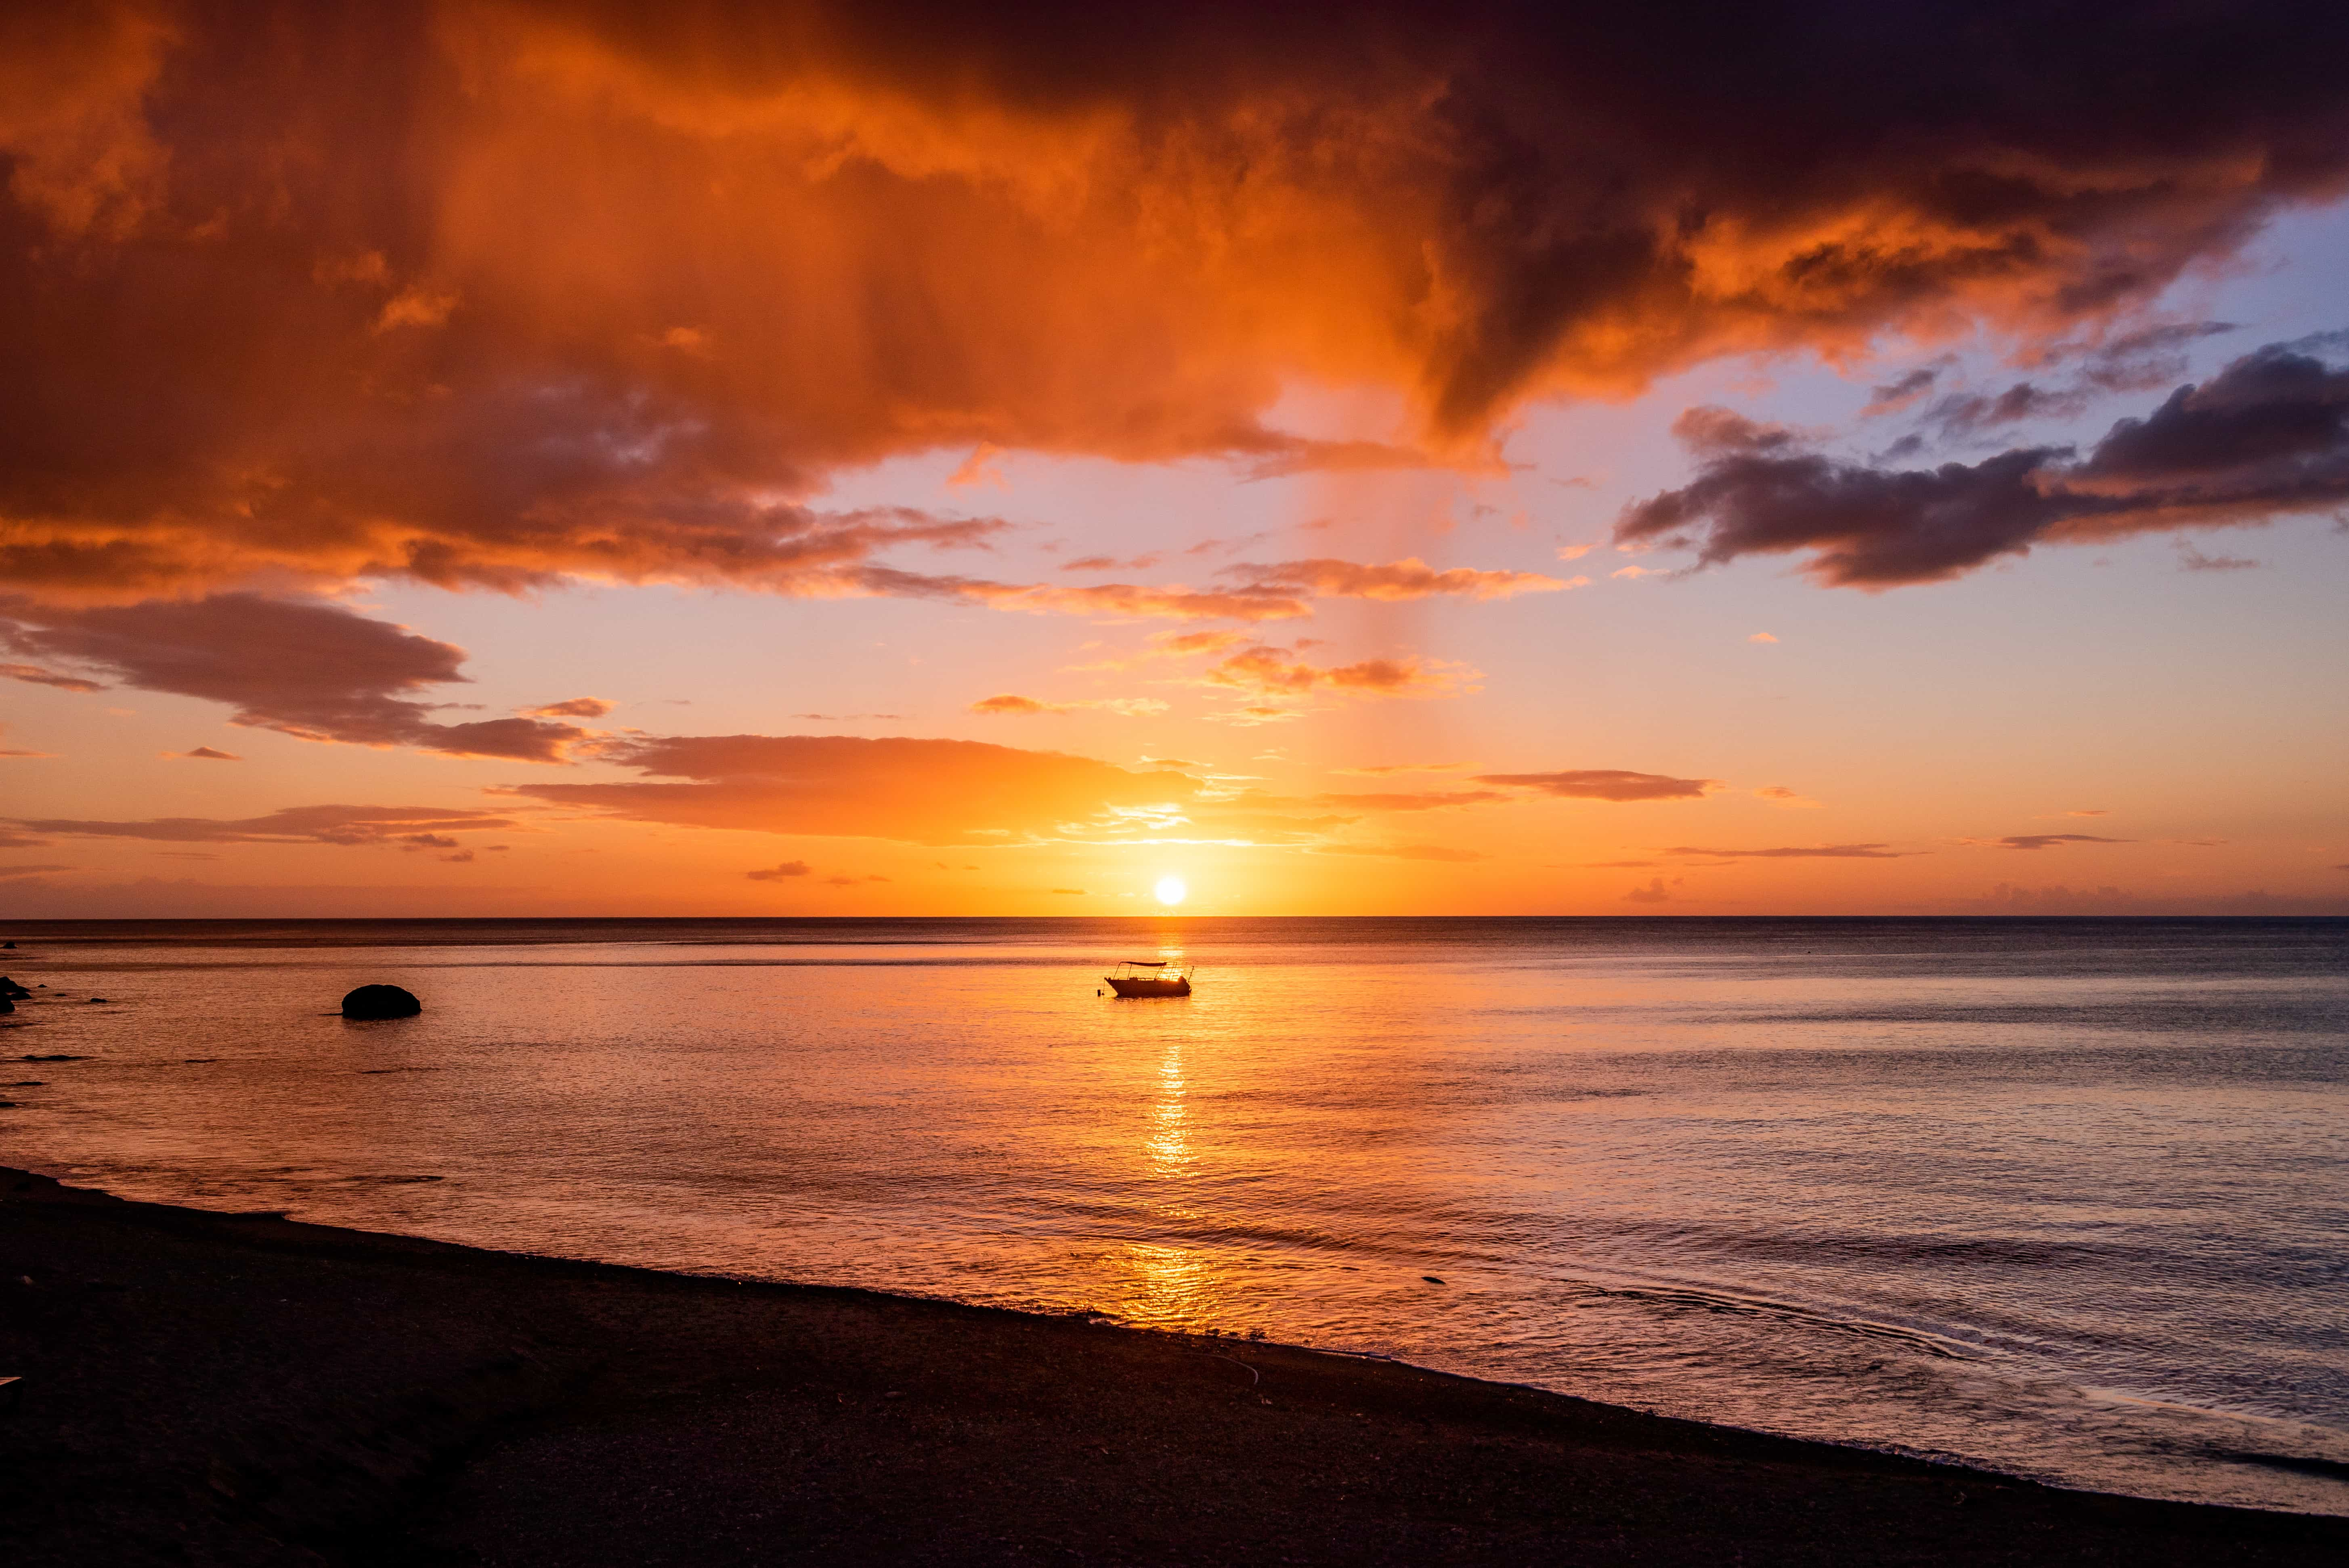 Sunset Bay Dominica Doesn't Disappoint - Photo of the Day